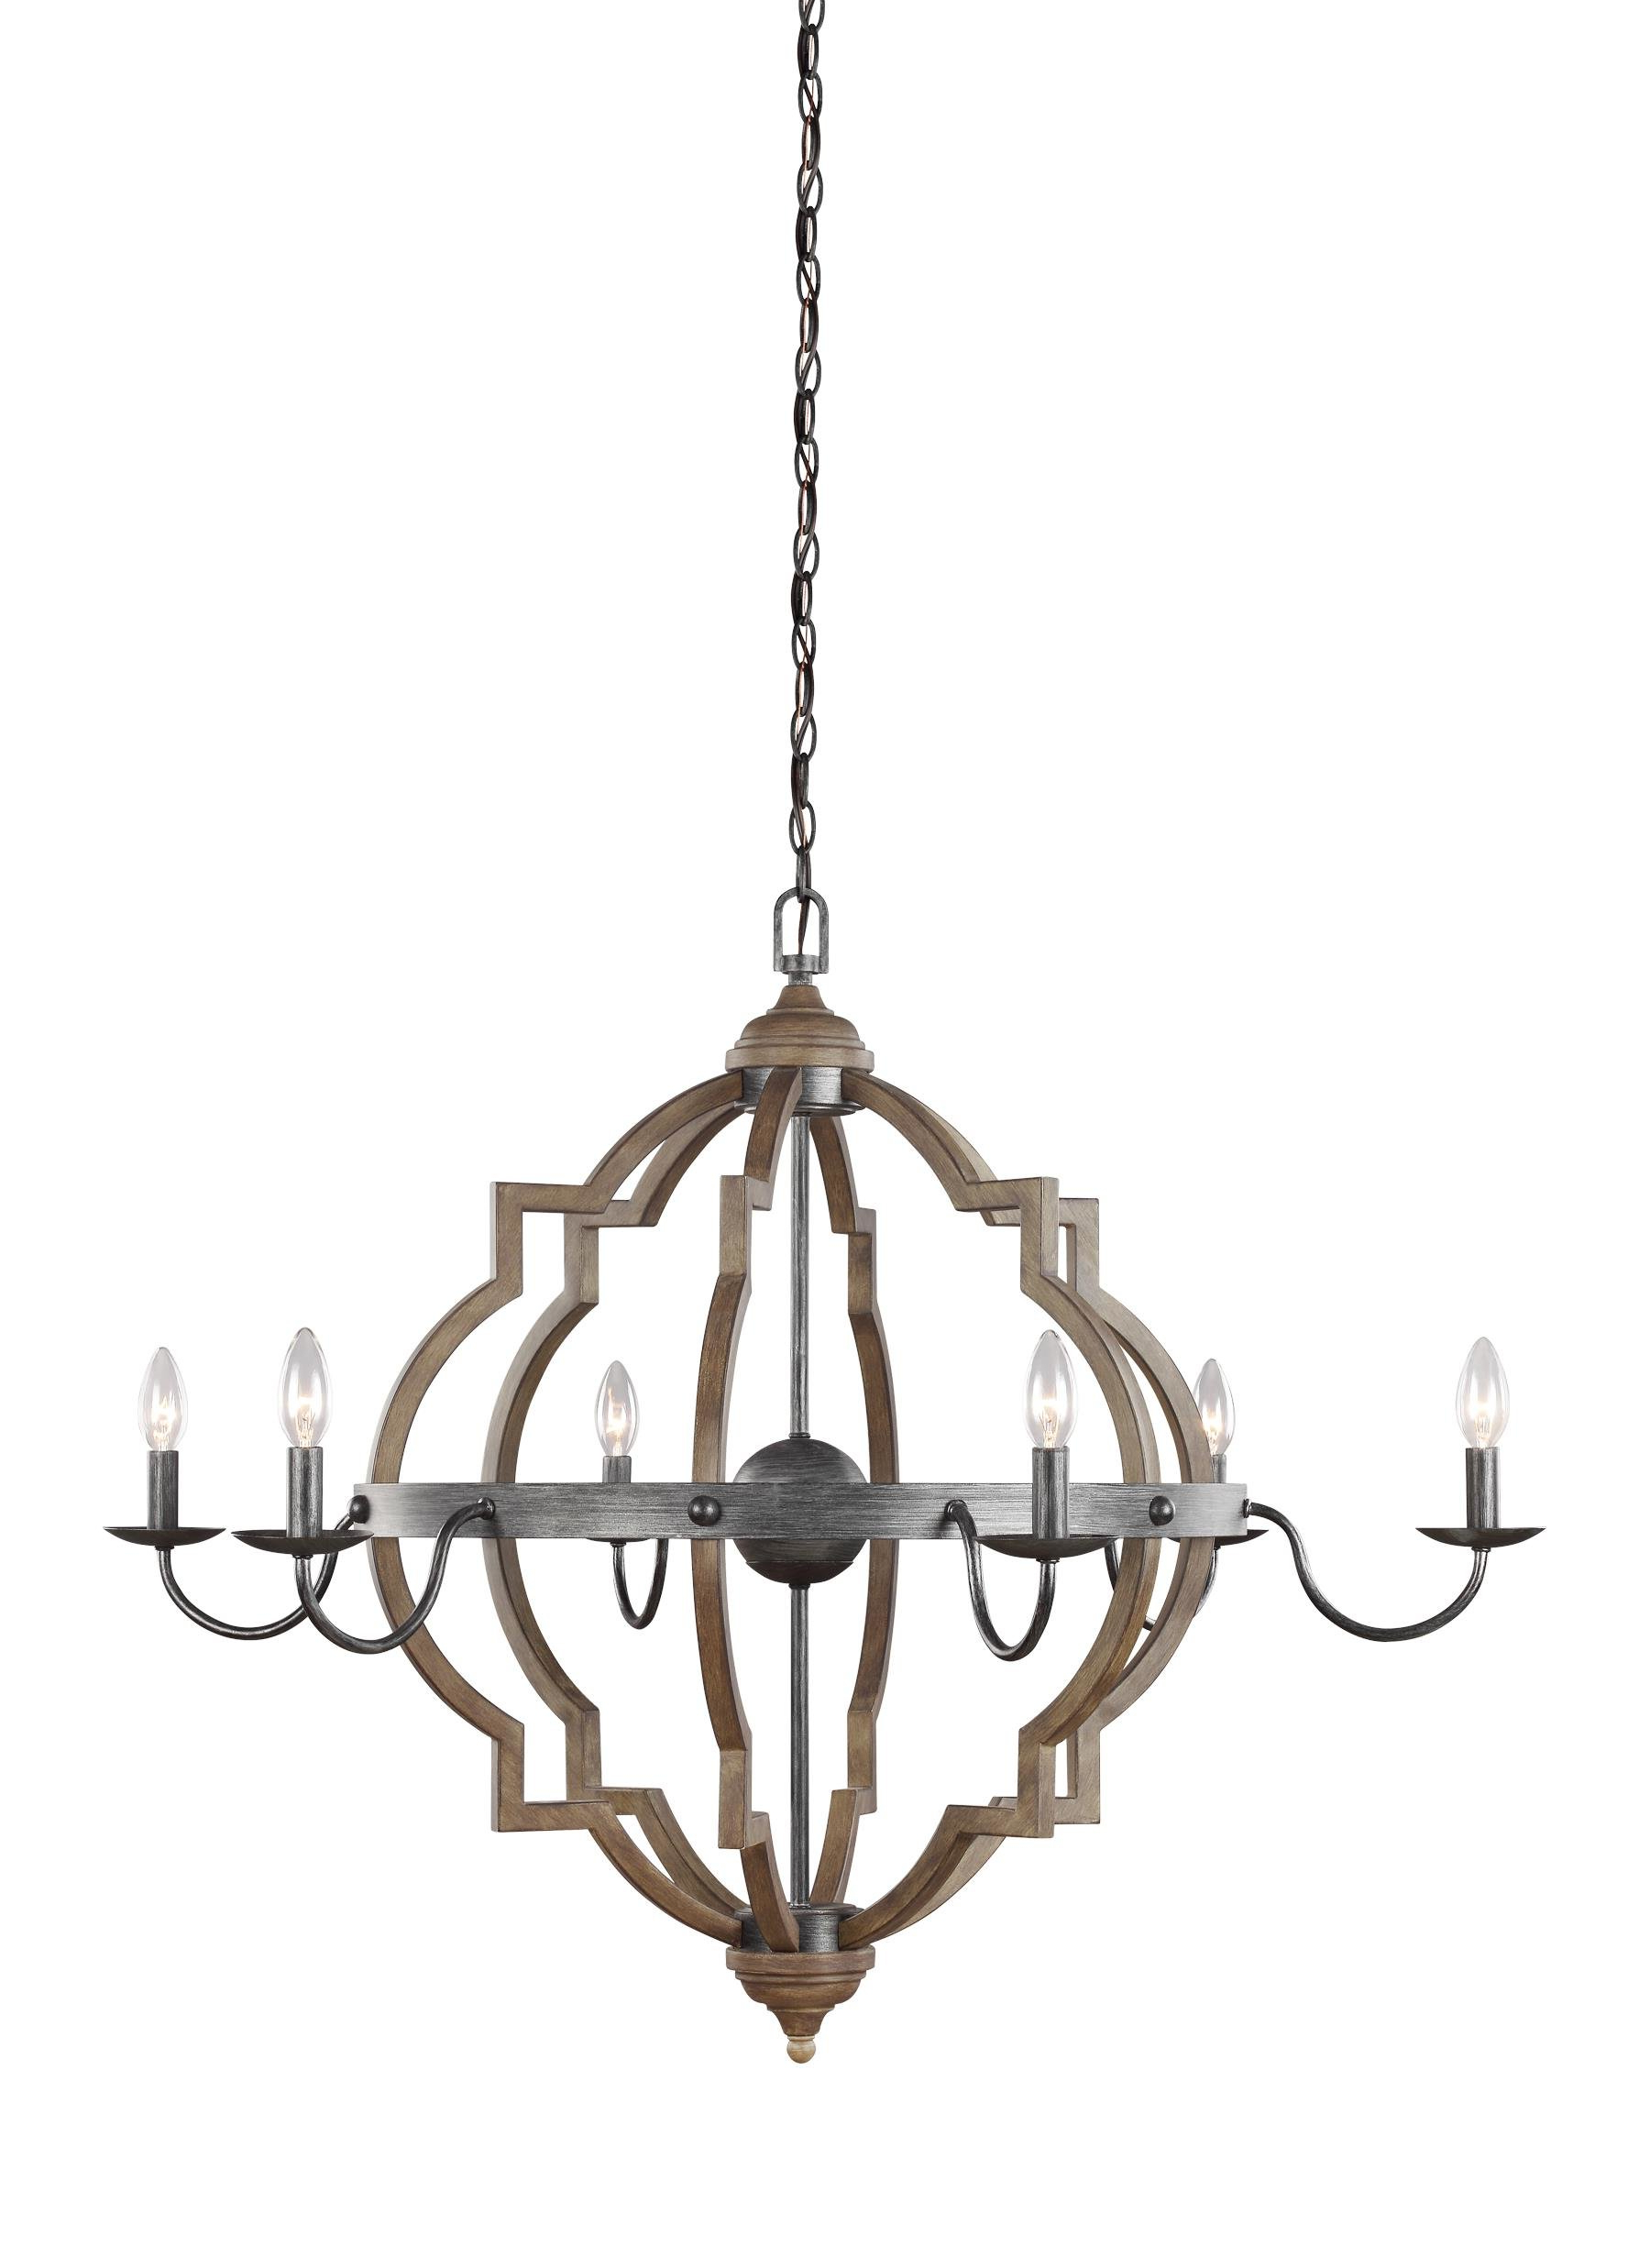 Donna 6 Light Candle Style Chandelier For Recent Bennington 6 Light Candle Style Chandeliers (Gallery 4 of 20)